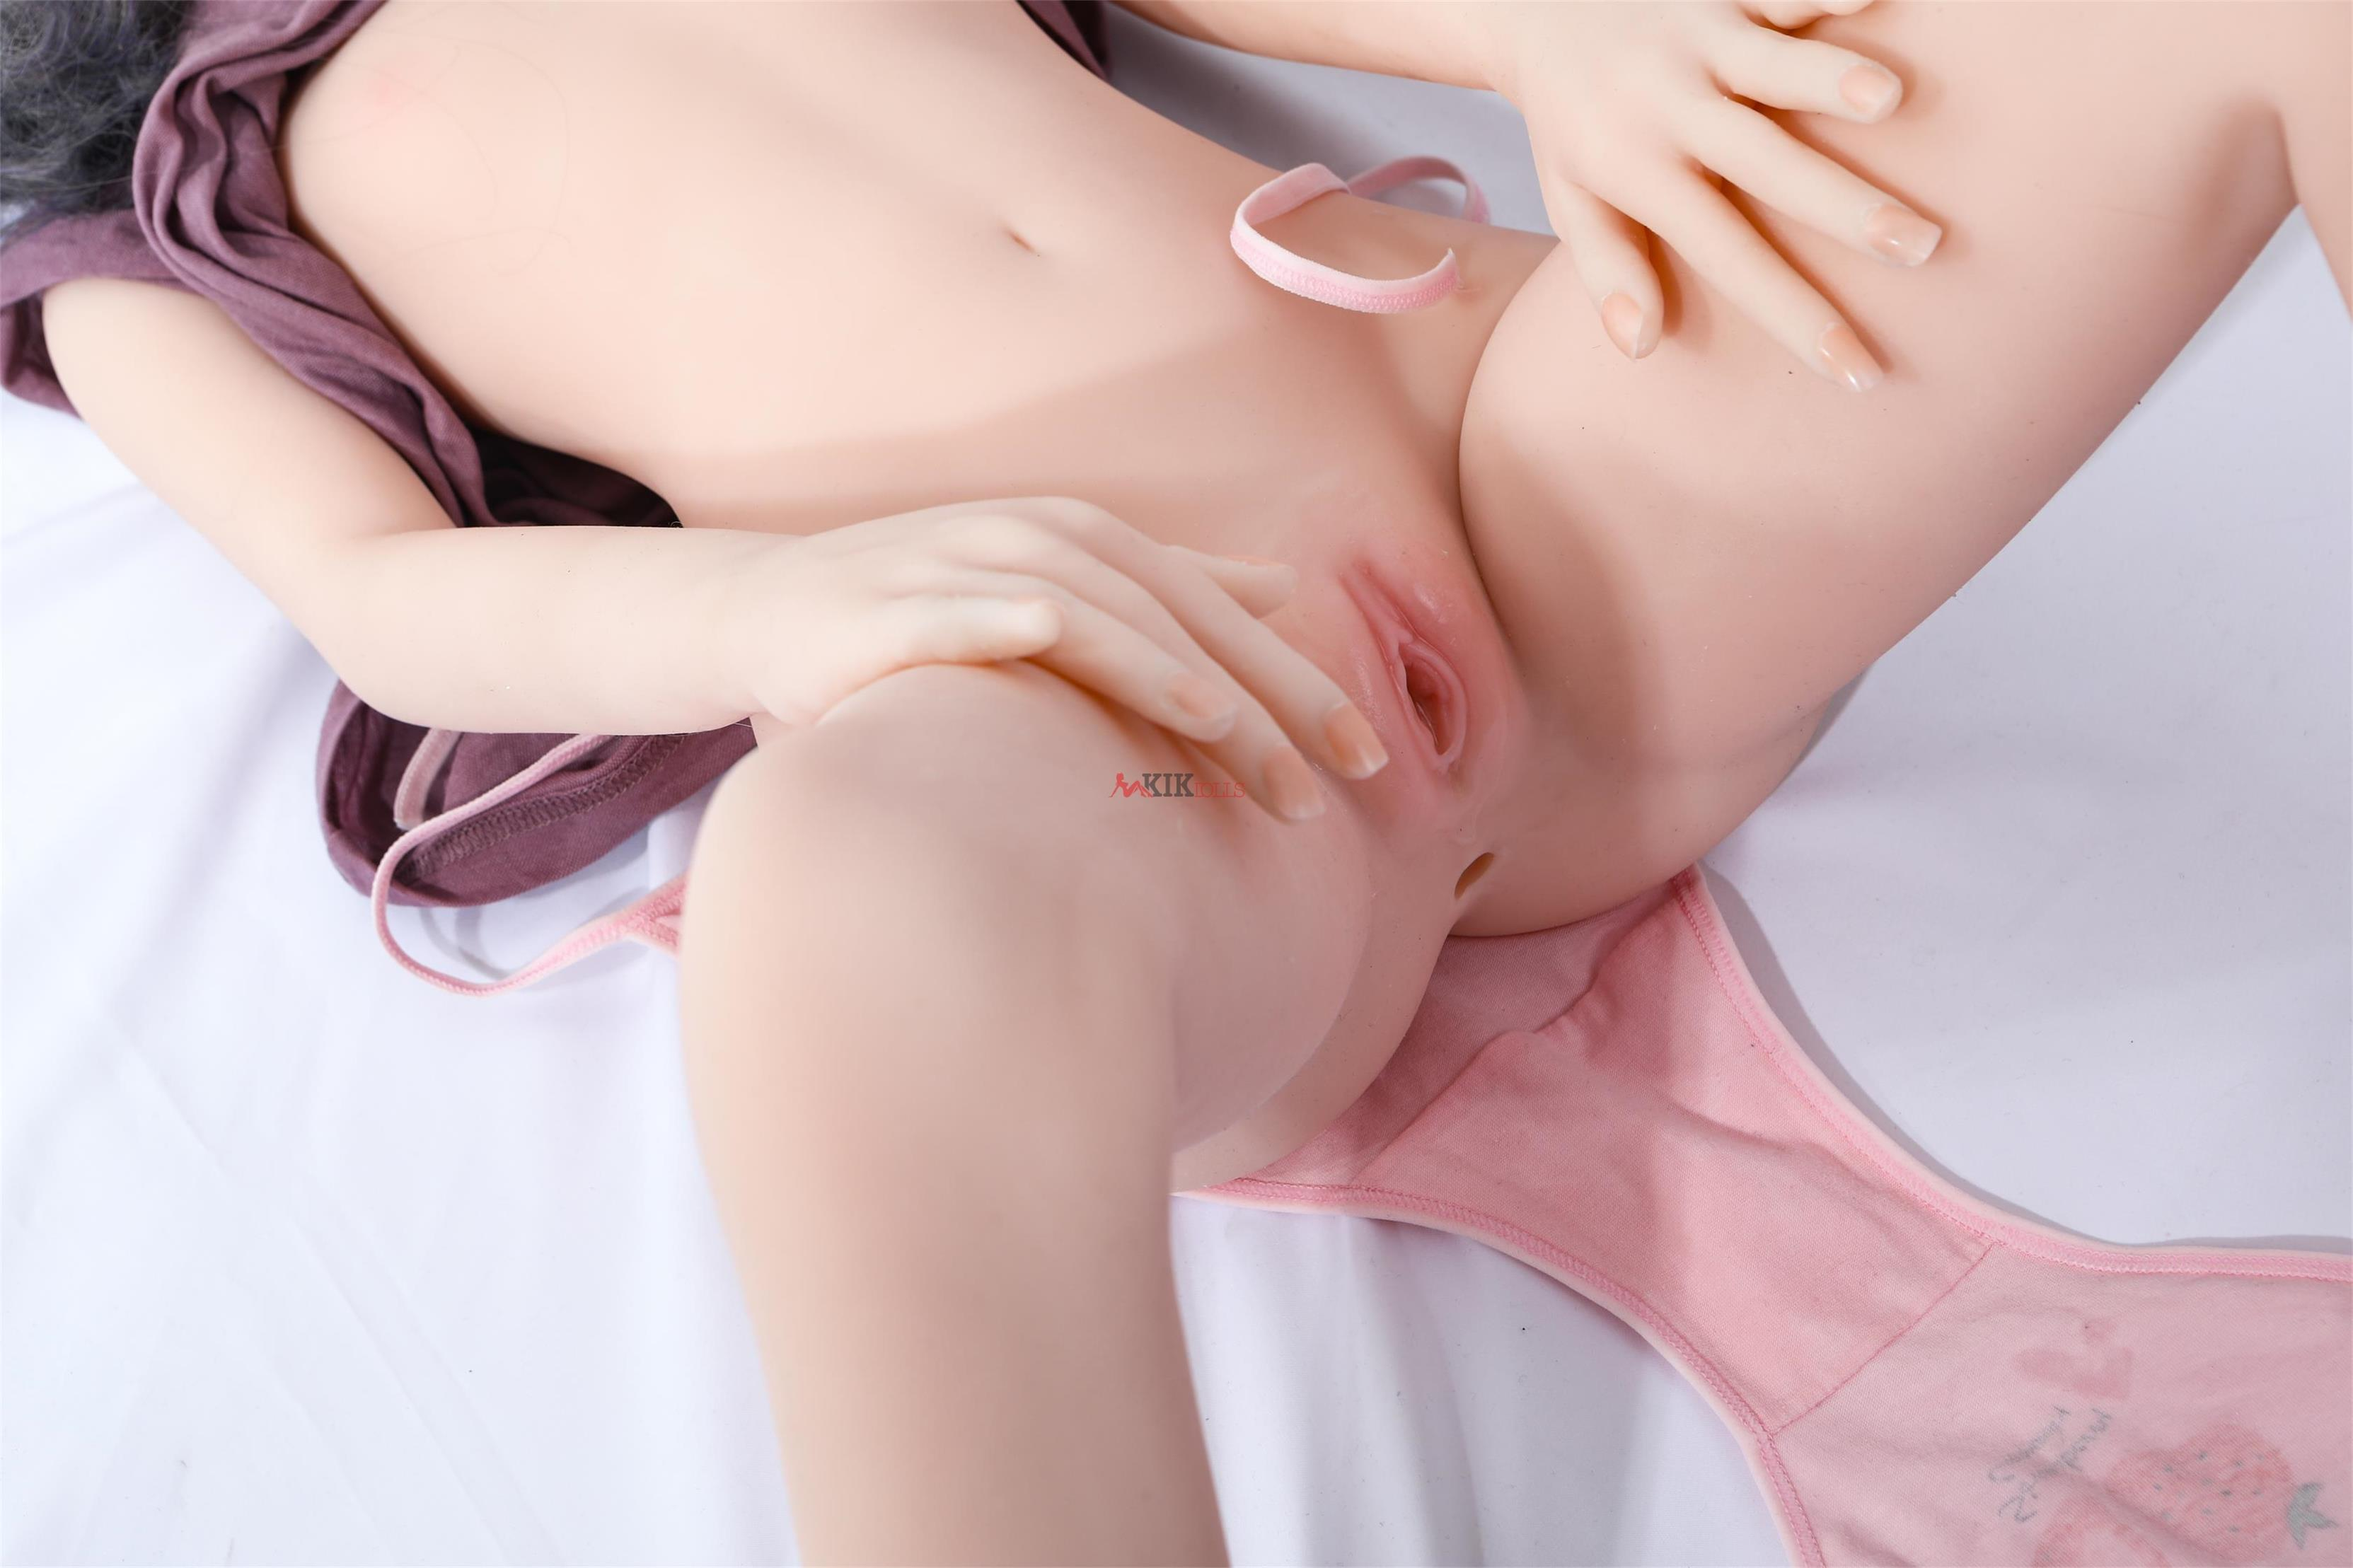 125cm Japanese flat chested sex doll Ichika